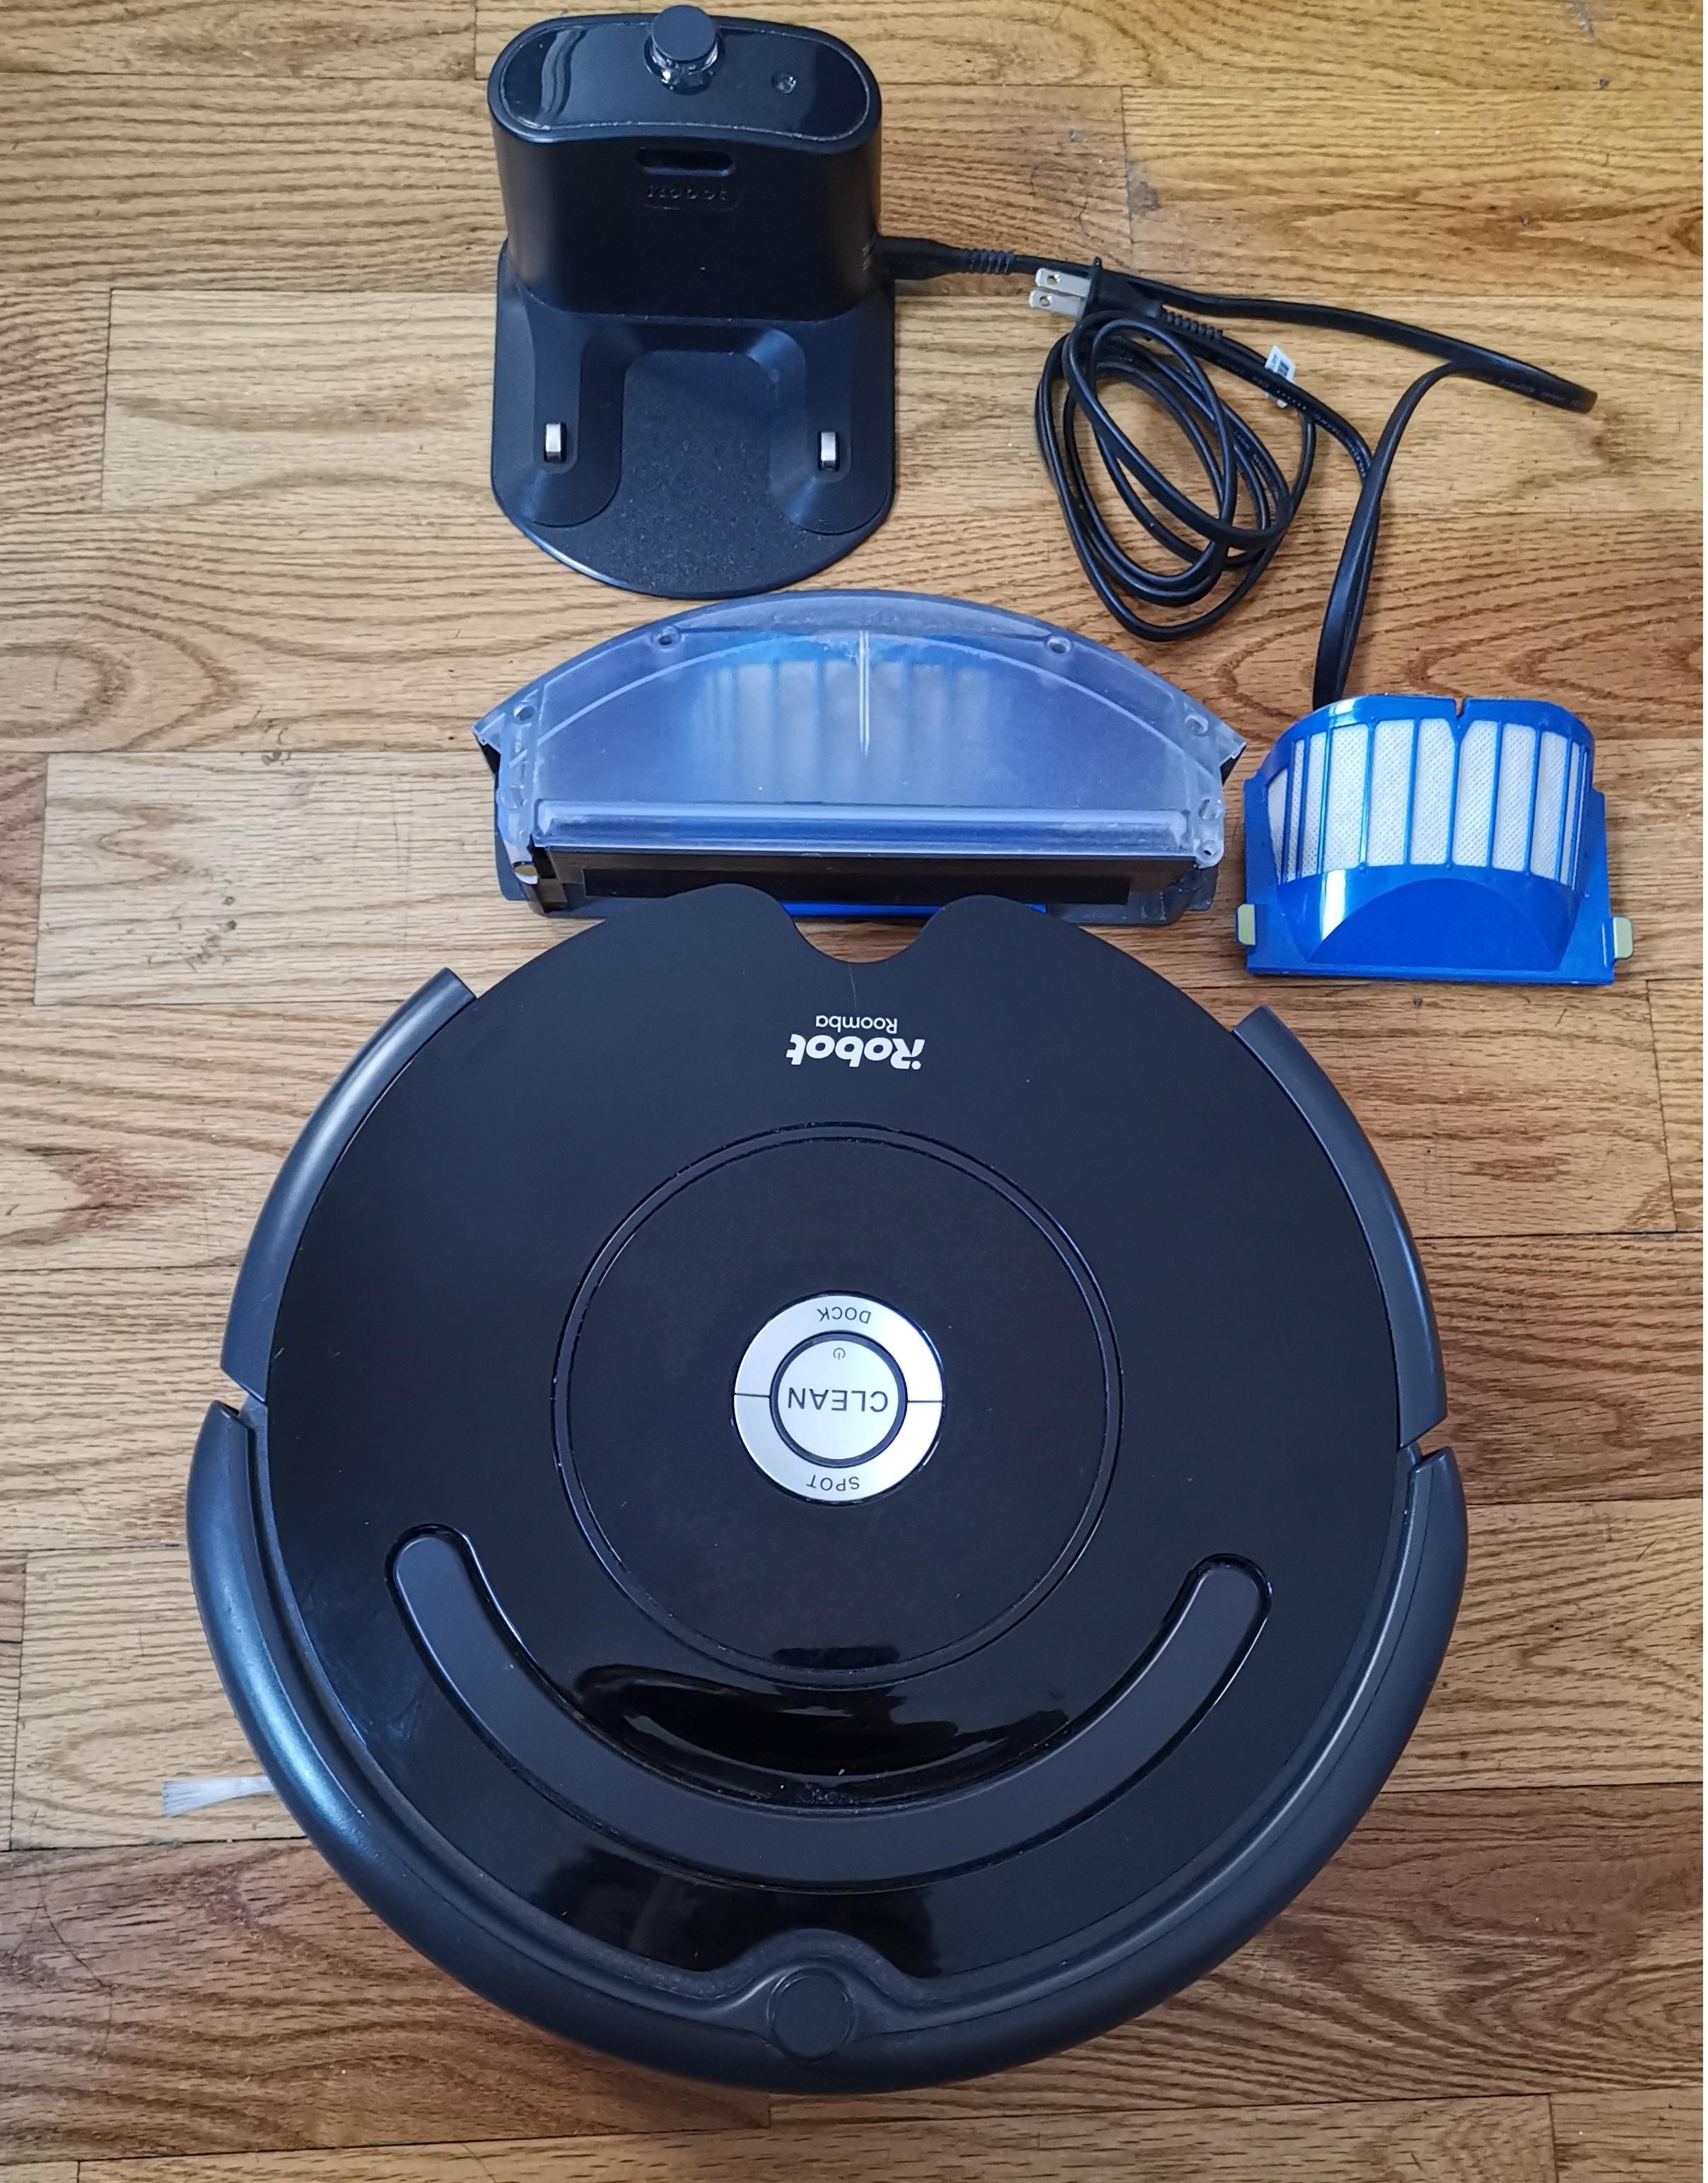 iRobot Roomba 675 Wi-Fi Connected Vacuum Cleaner